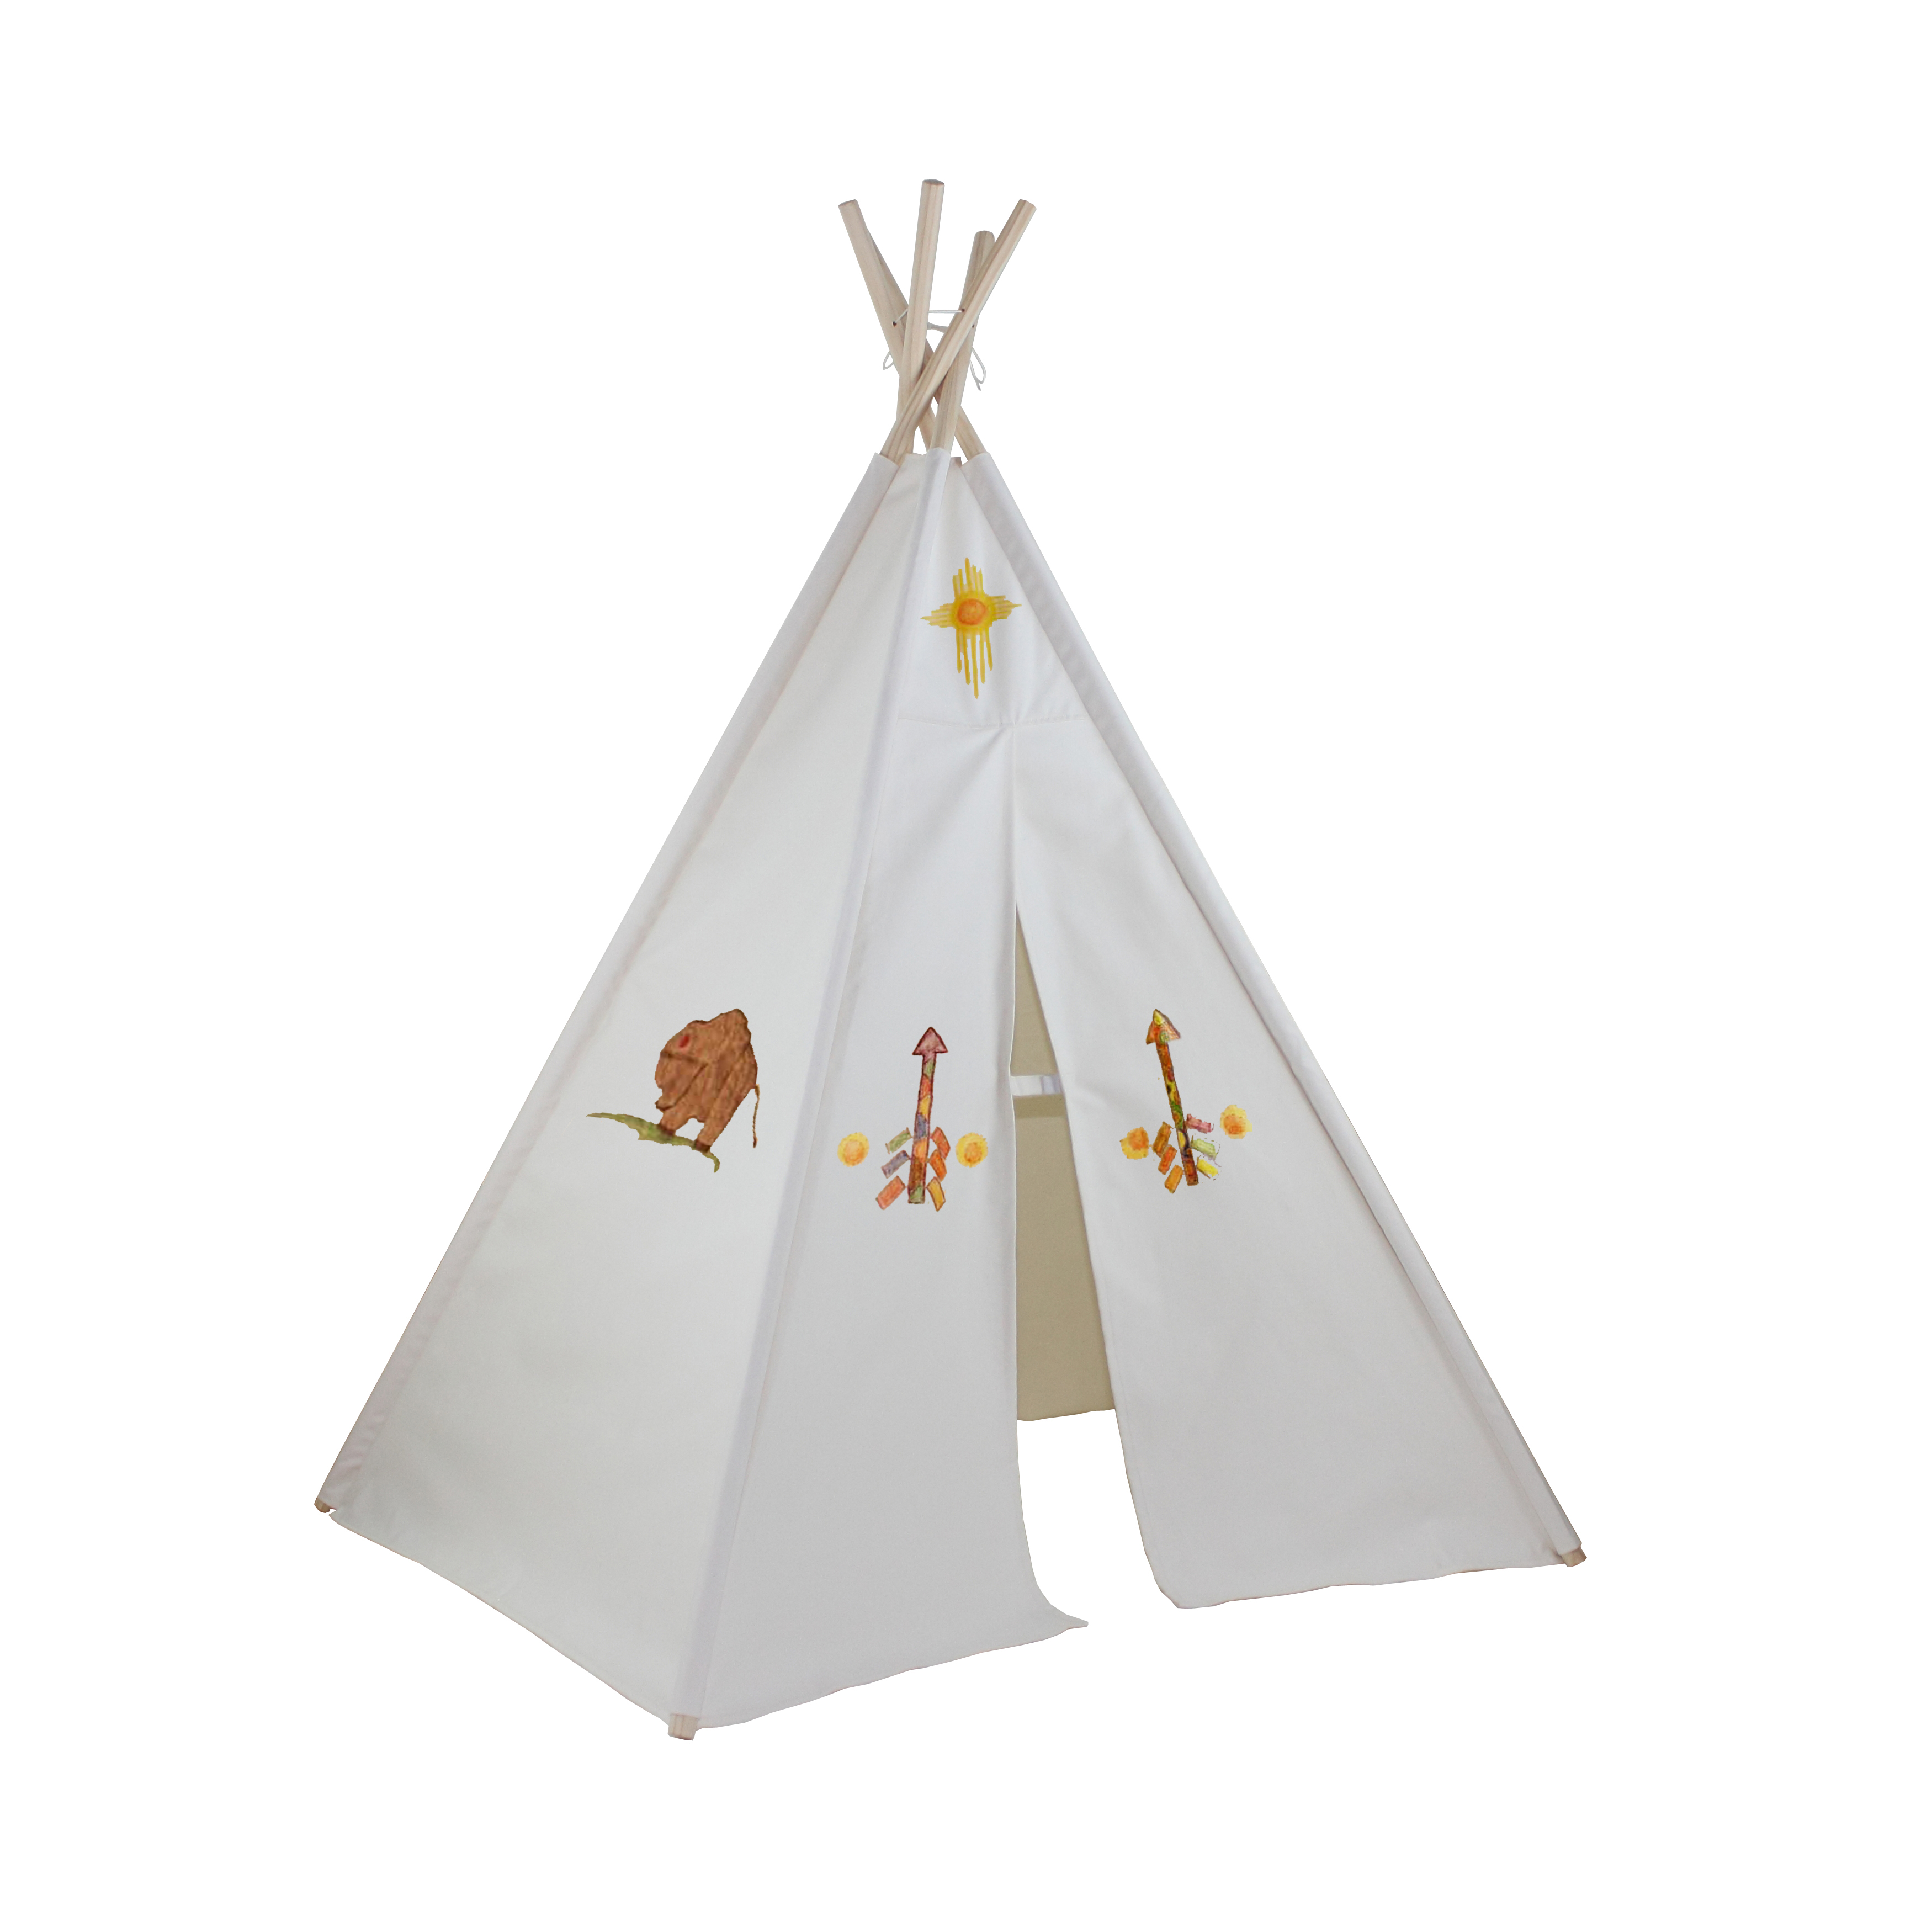 6ft Hideaway Five Panel Teepee w/ Washable Markers Thumbnail 1